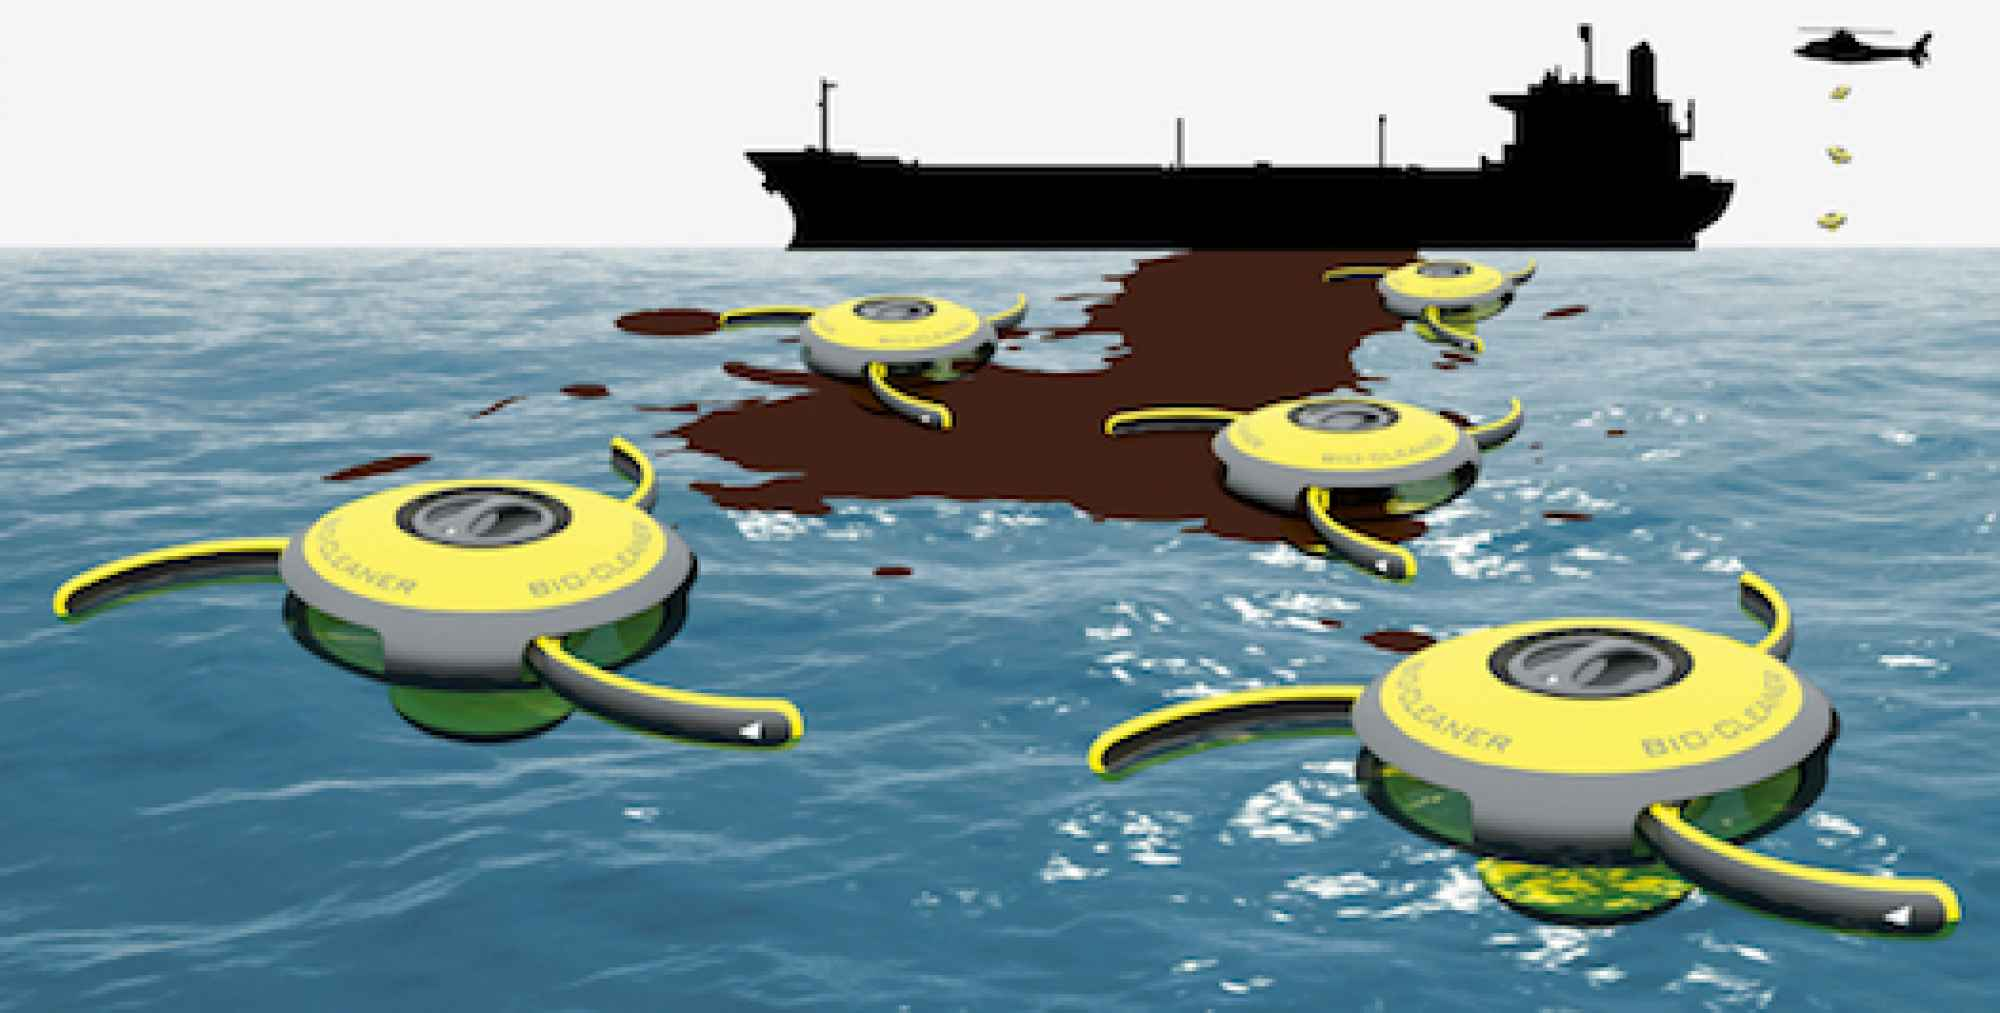 Oil Cleaning Drone Design